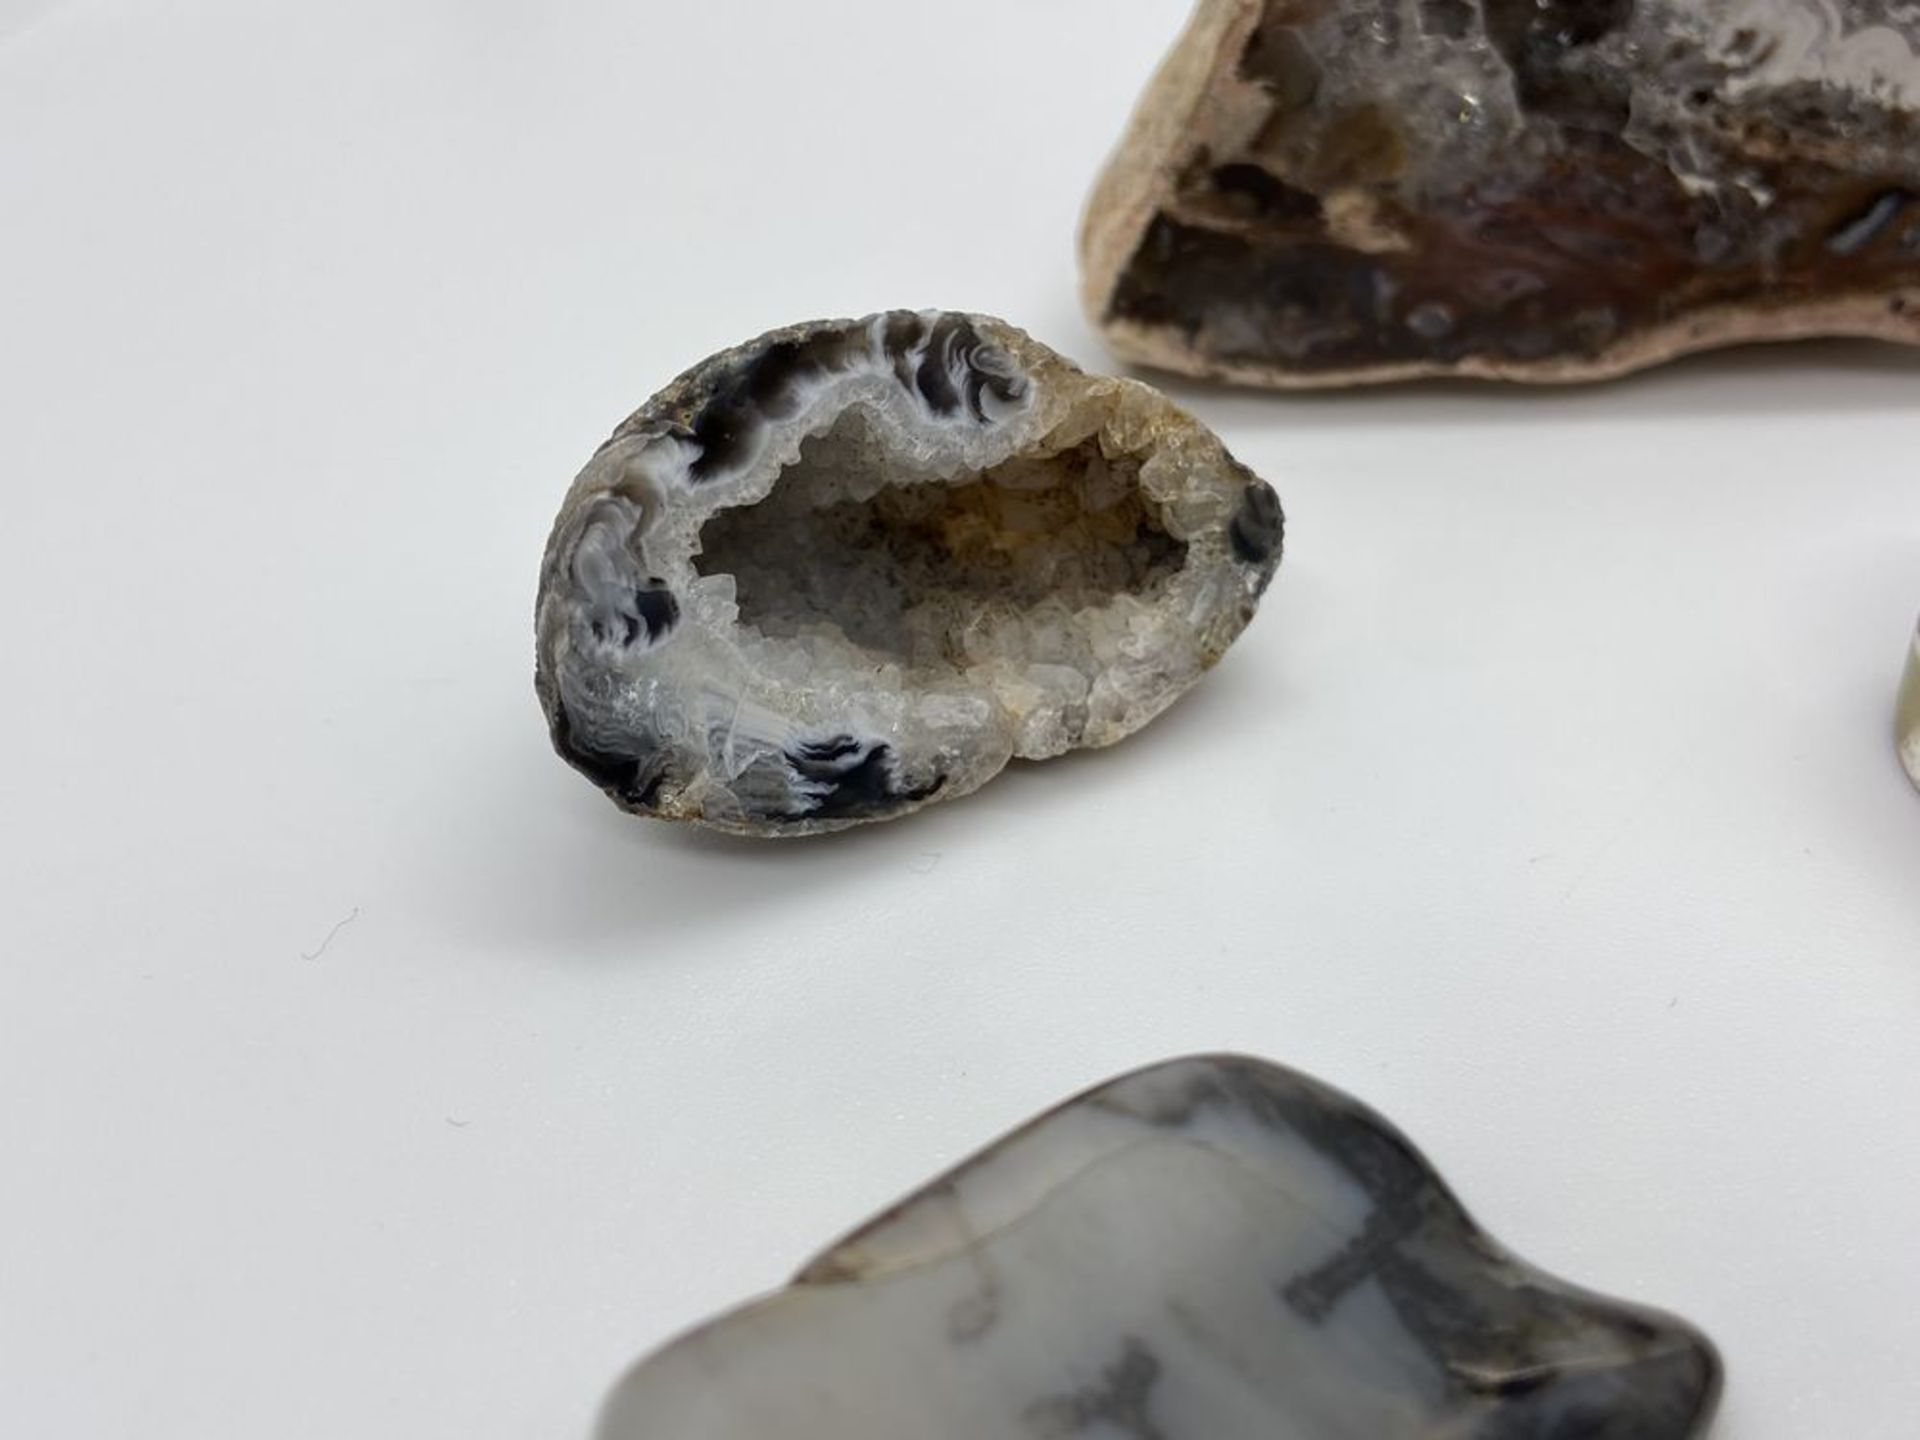 Collection of rocks, stones - Image 3 of 3